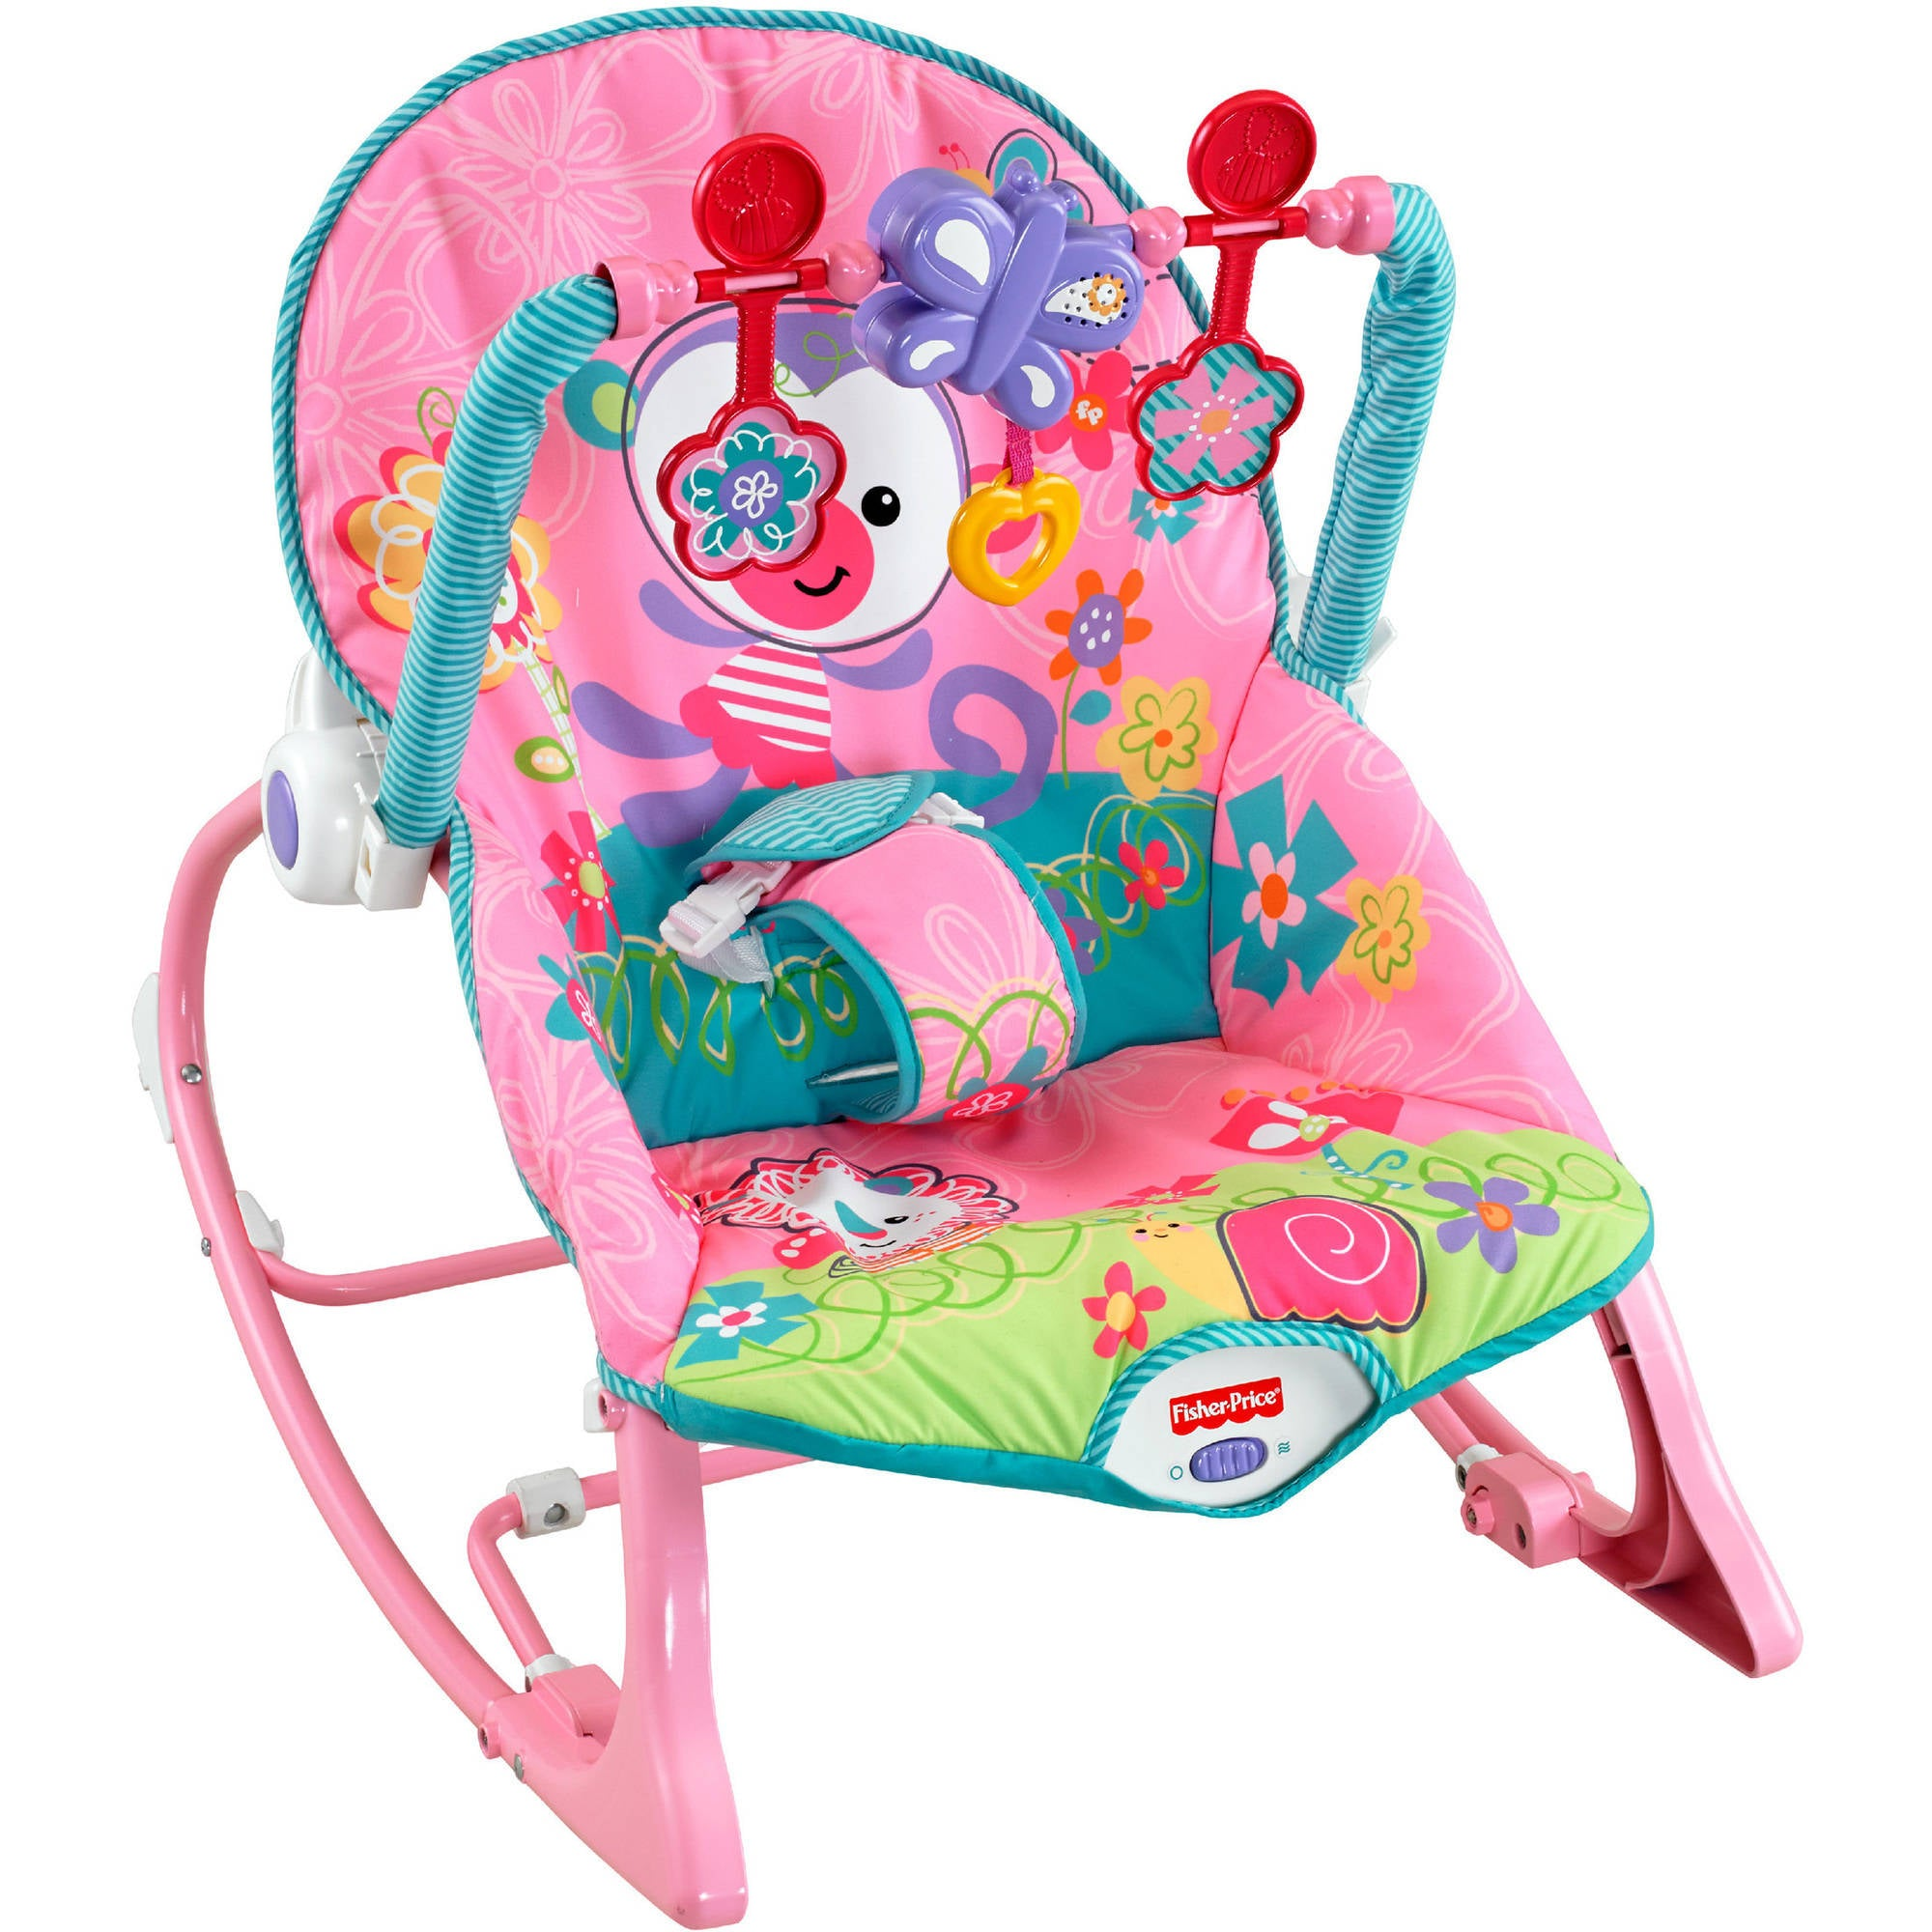 Fine Fisher Price Infant To Toddler Rocker Bouncer Machost Co Dining Chair Design Ideas Machostcouk